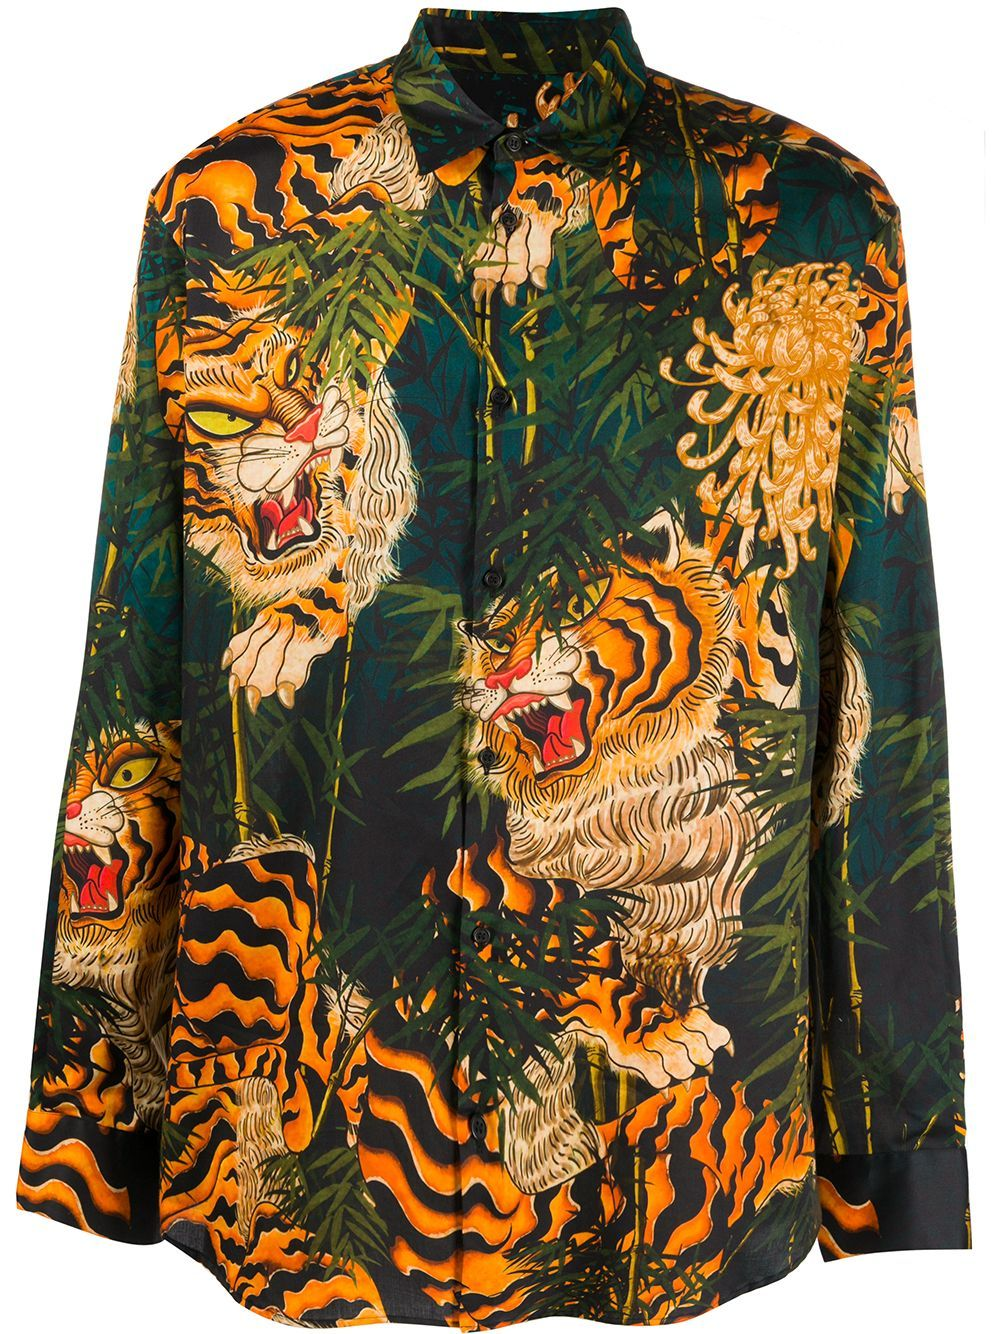 Dsquared2 Tiger Bamboo Print Long Sleeved Shirt Green In 2020